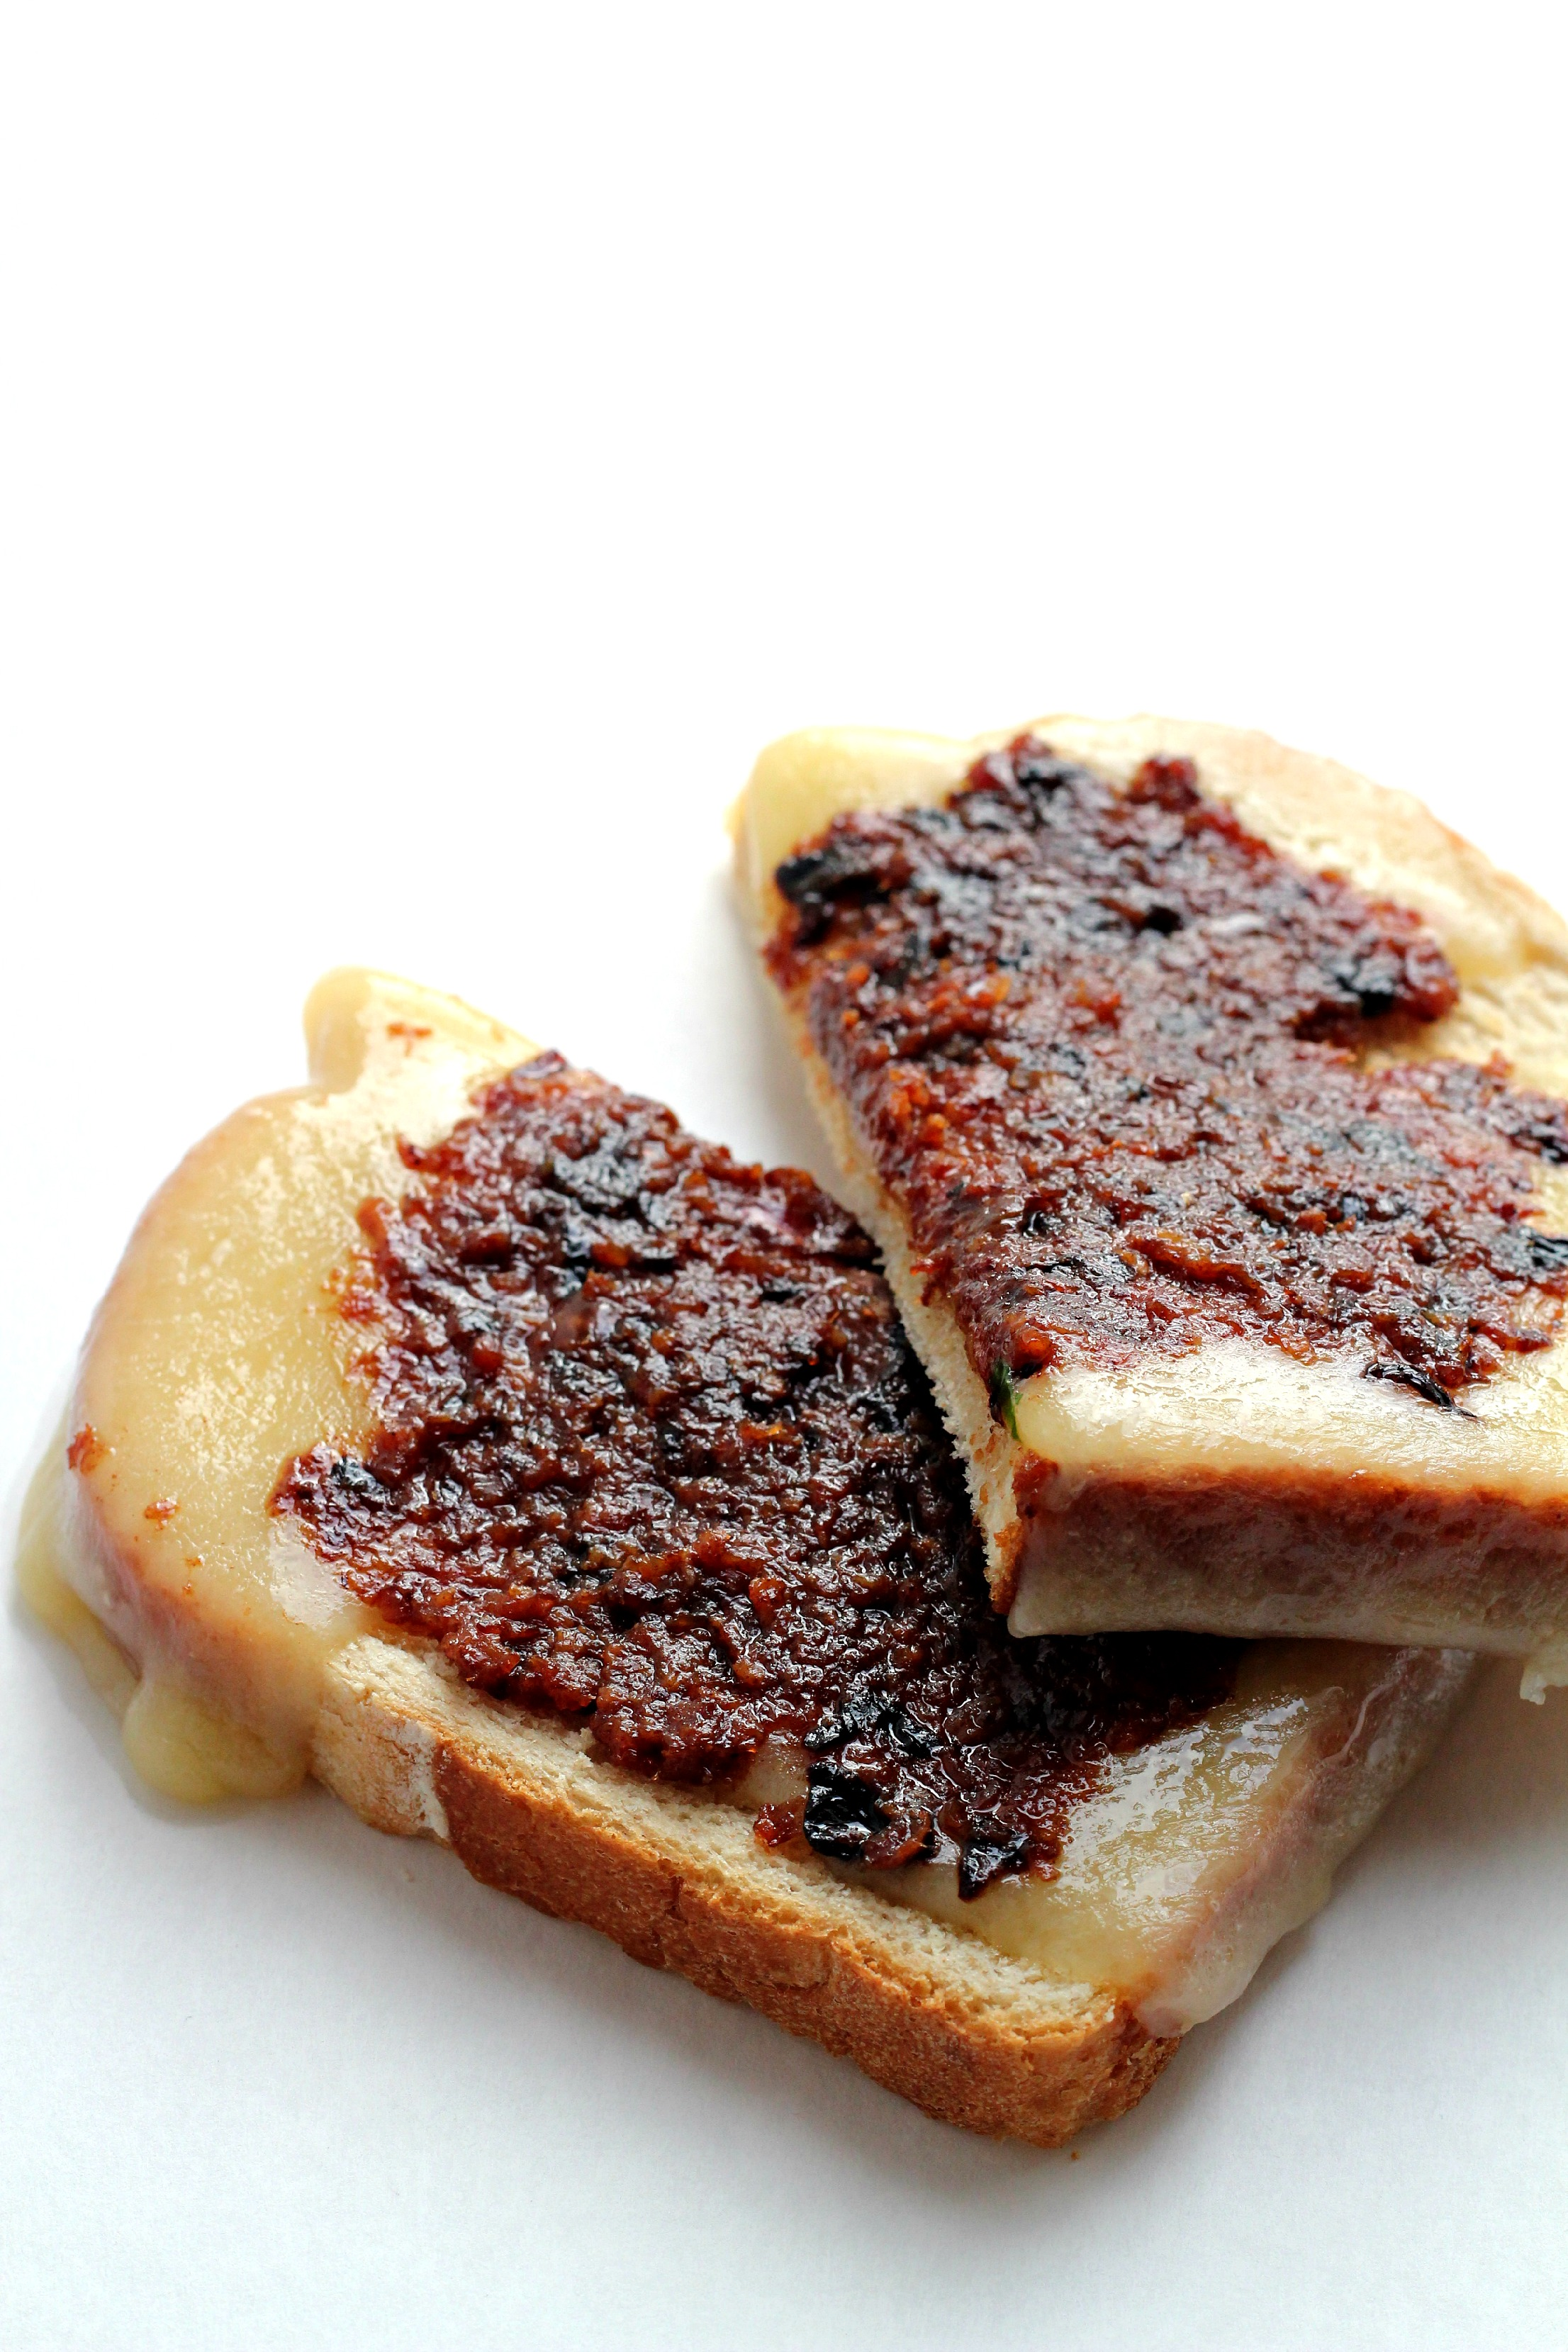 This Paleo Bacon Jam is so amazing. It is great on a burger or a gluten free grilled cheese. I double it once a week and use it on everything!